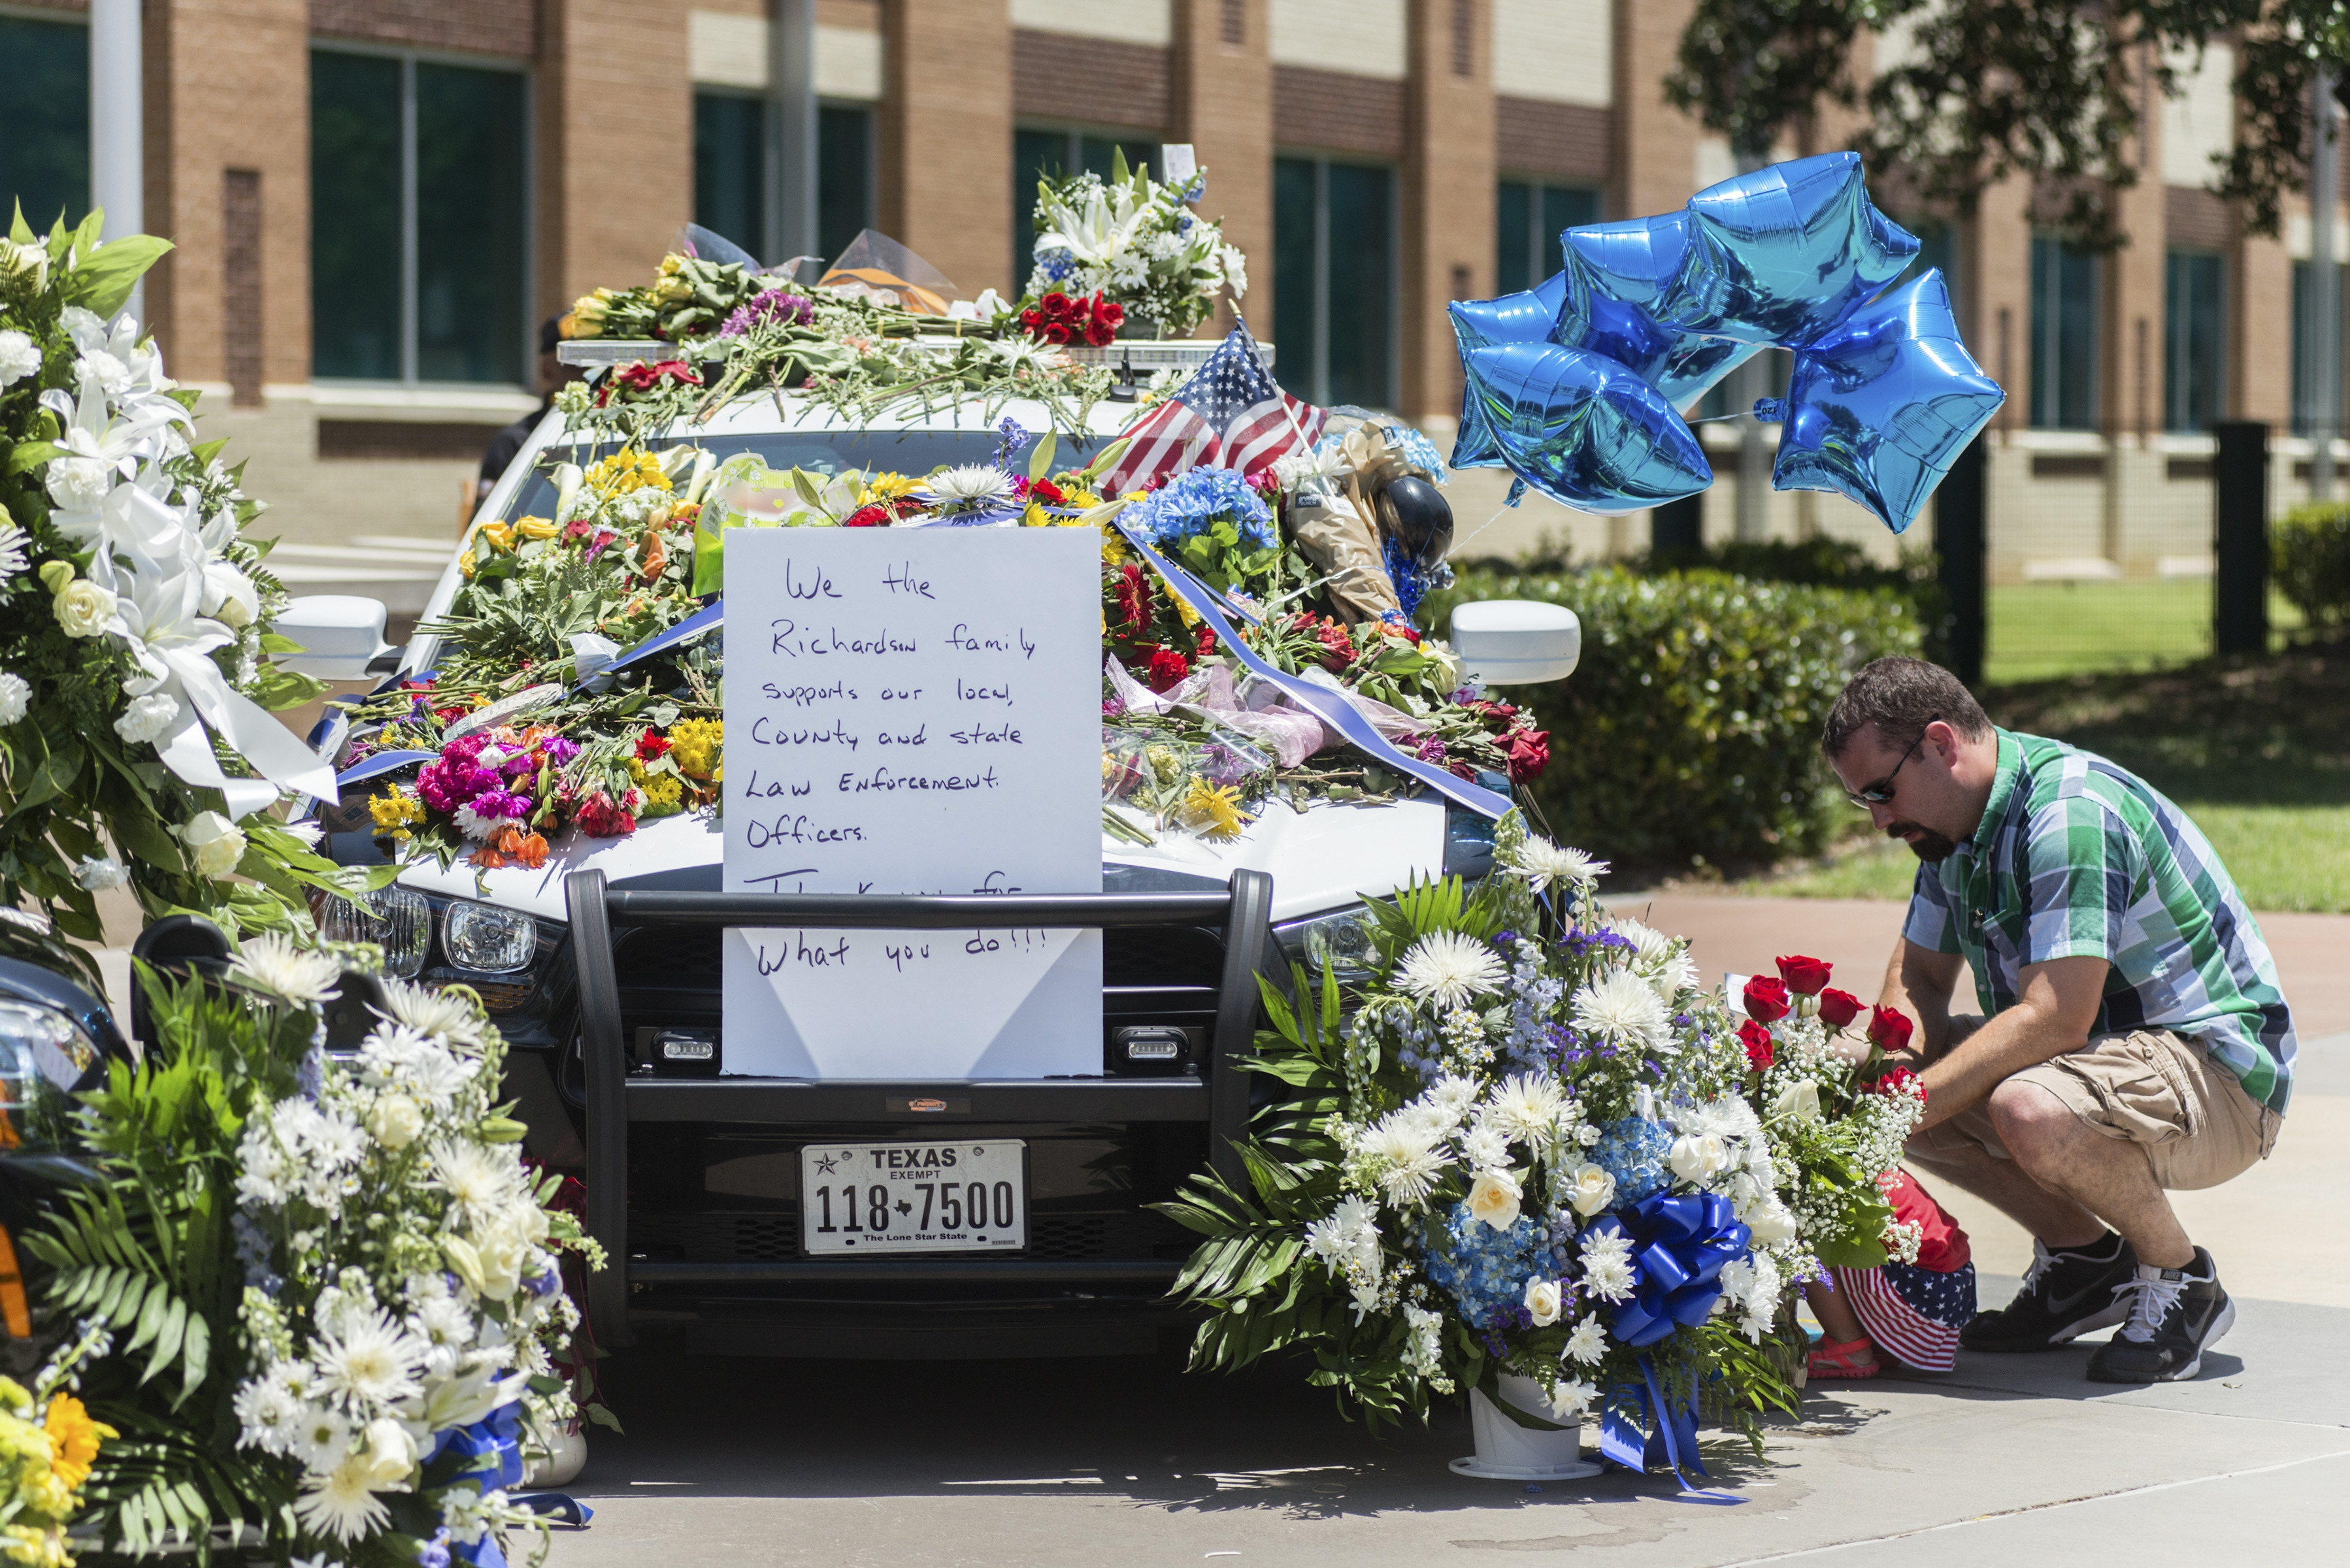 Brandon Stafford pays his respects at a makeshift memorial by a patrol car outside the Dallas Police Department headquarters on Friday, the day after five officers were shot dead. In Buffalo, police shootings are infrequent. Two people have died in armed confrontations and two have been wounded since 2012. (New York Times)